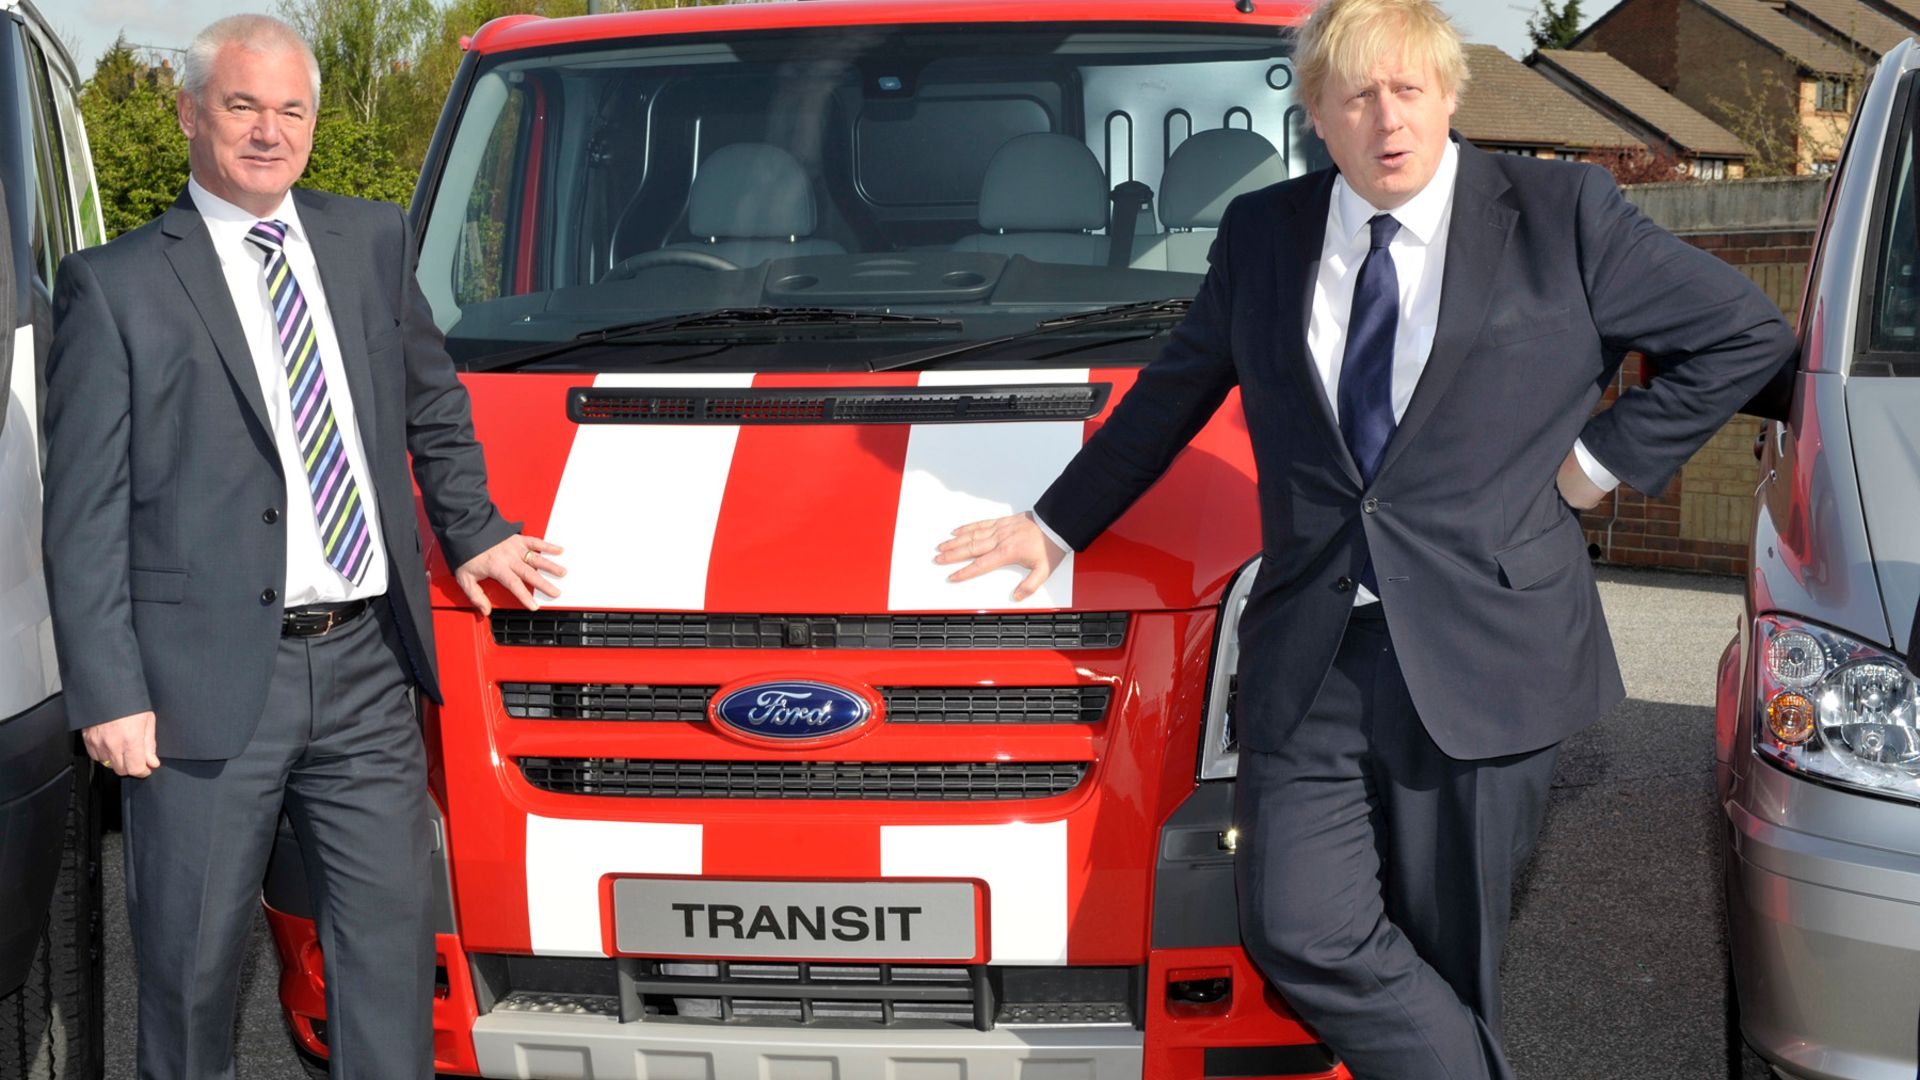 Boris Johnson and Ford Transit